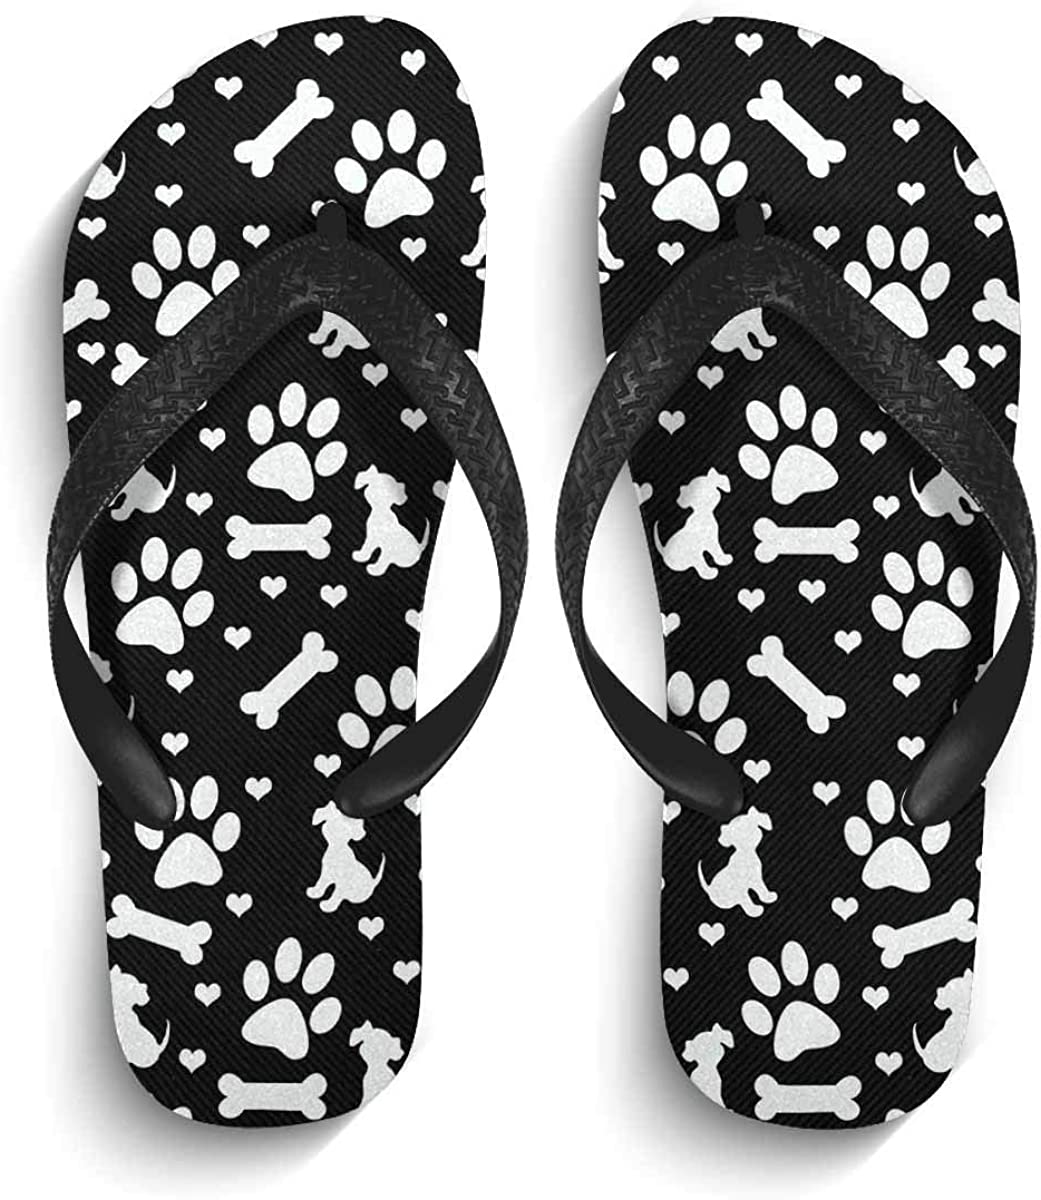 InterestPrint Men's Non-Slip Flip Flops Black and White Dog Paw Print Puppy Bone and Hearts Slim Thong Sandal Outdoor Casual Footwear XL